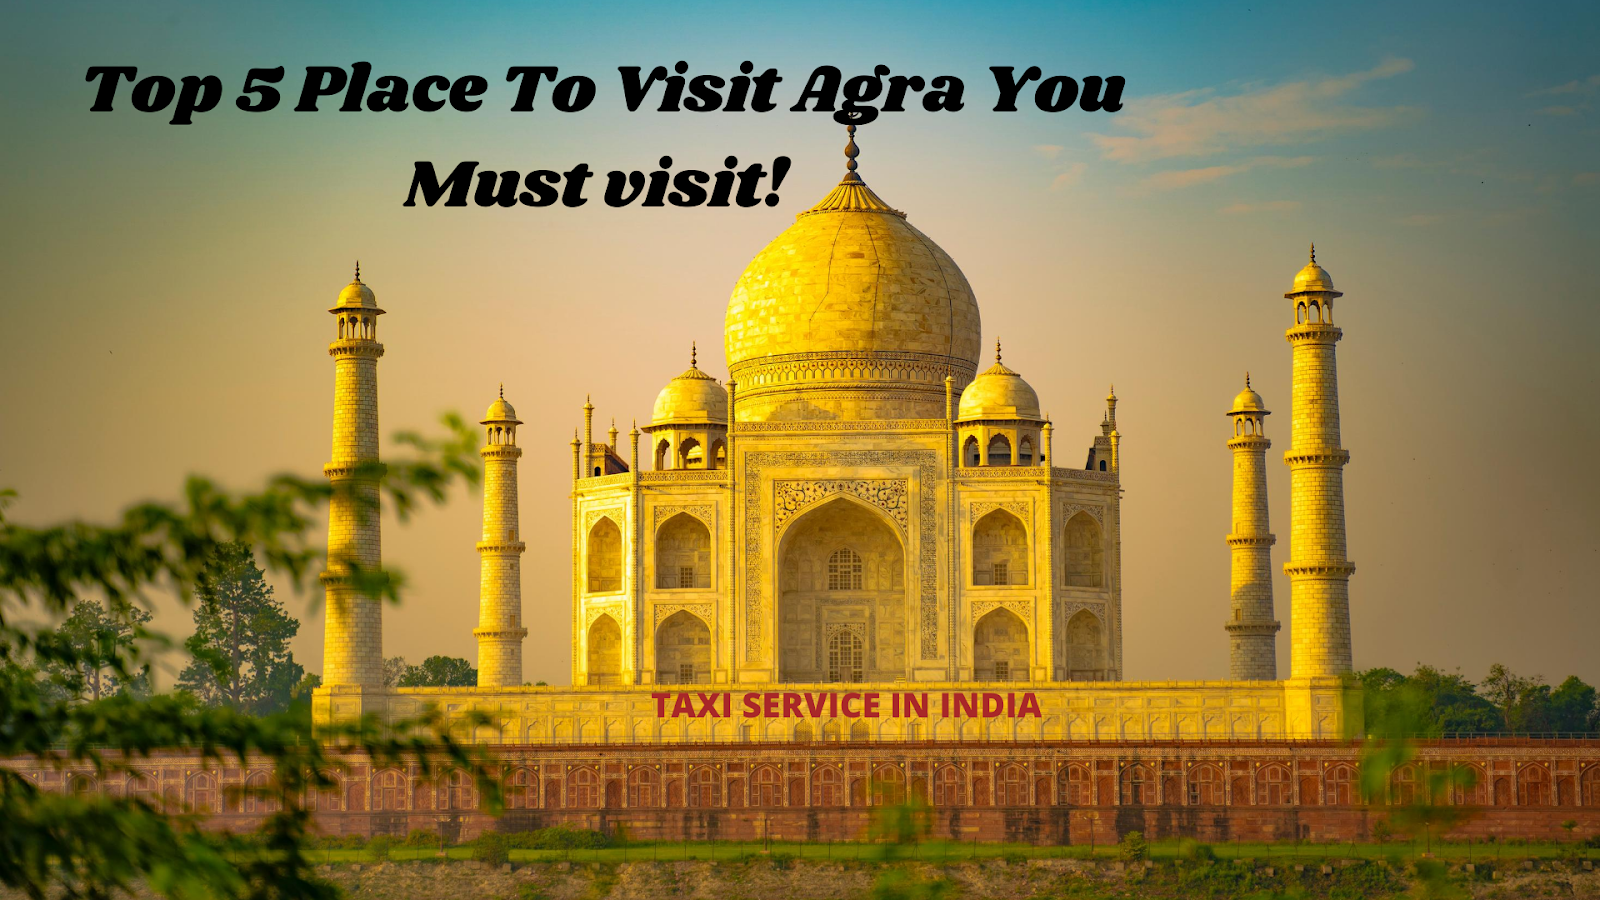 Top 5 Places To Visit Agra